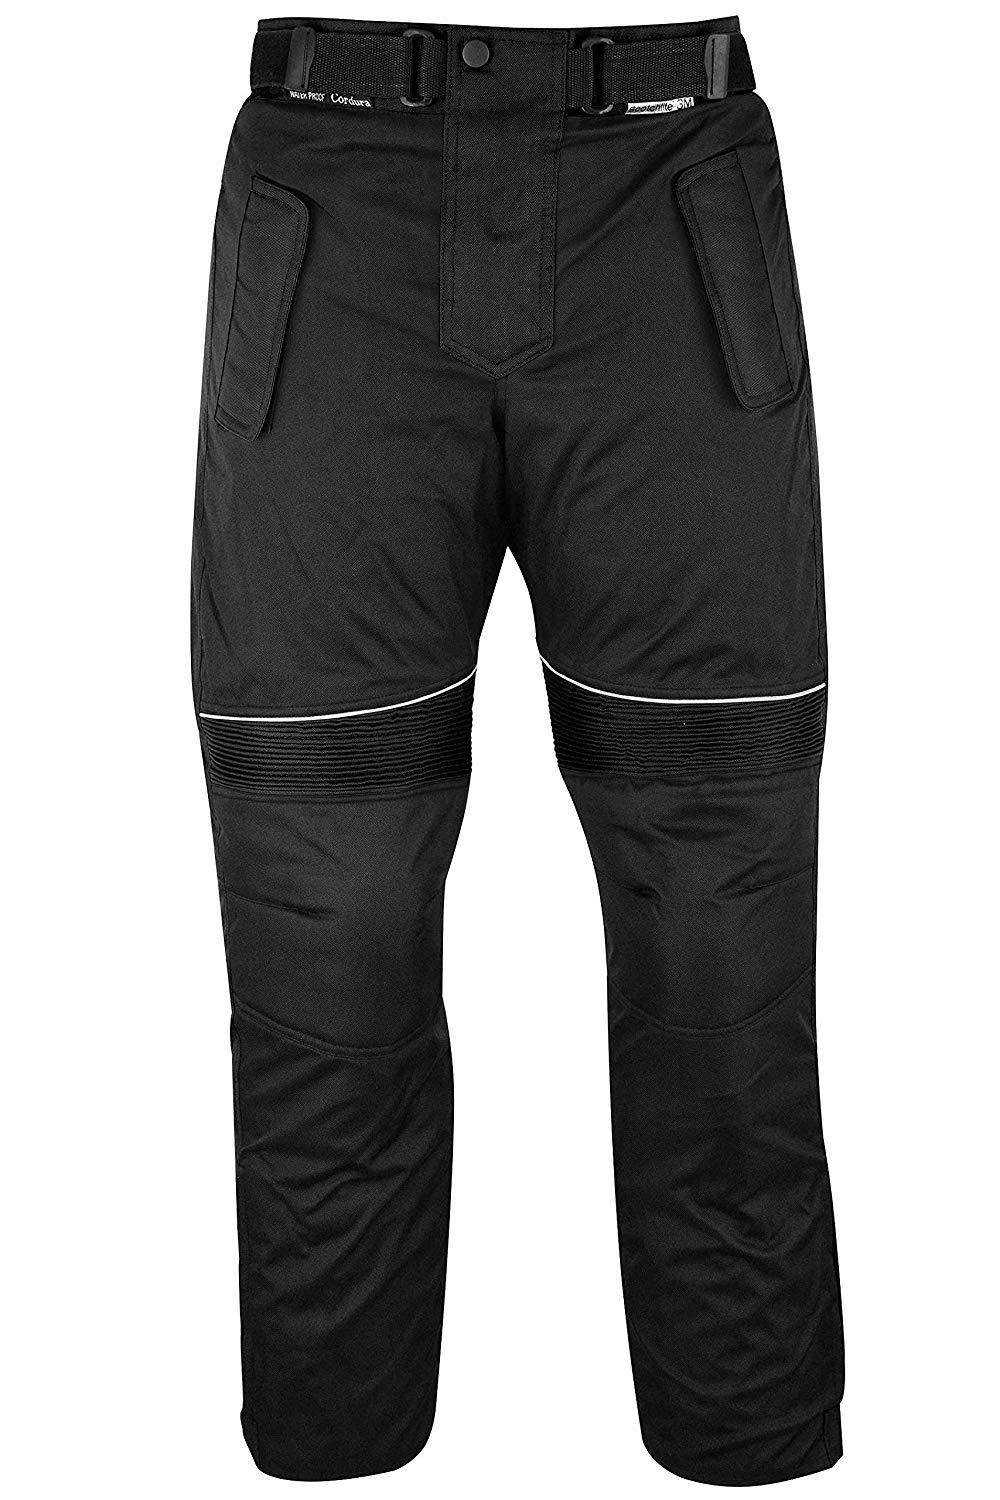 Pantalones d moto German Wear